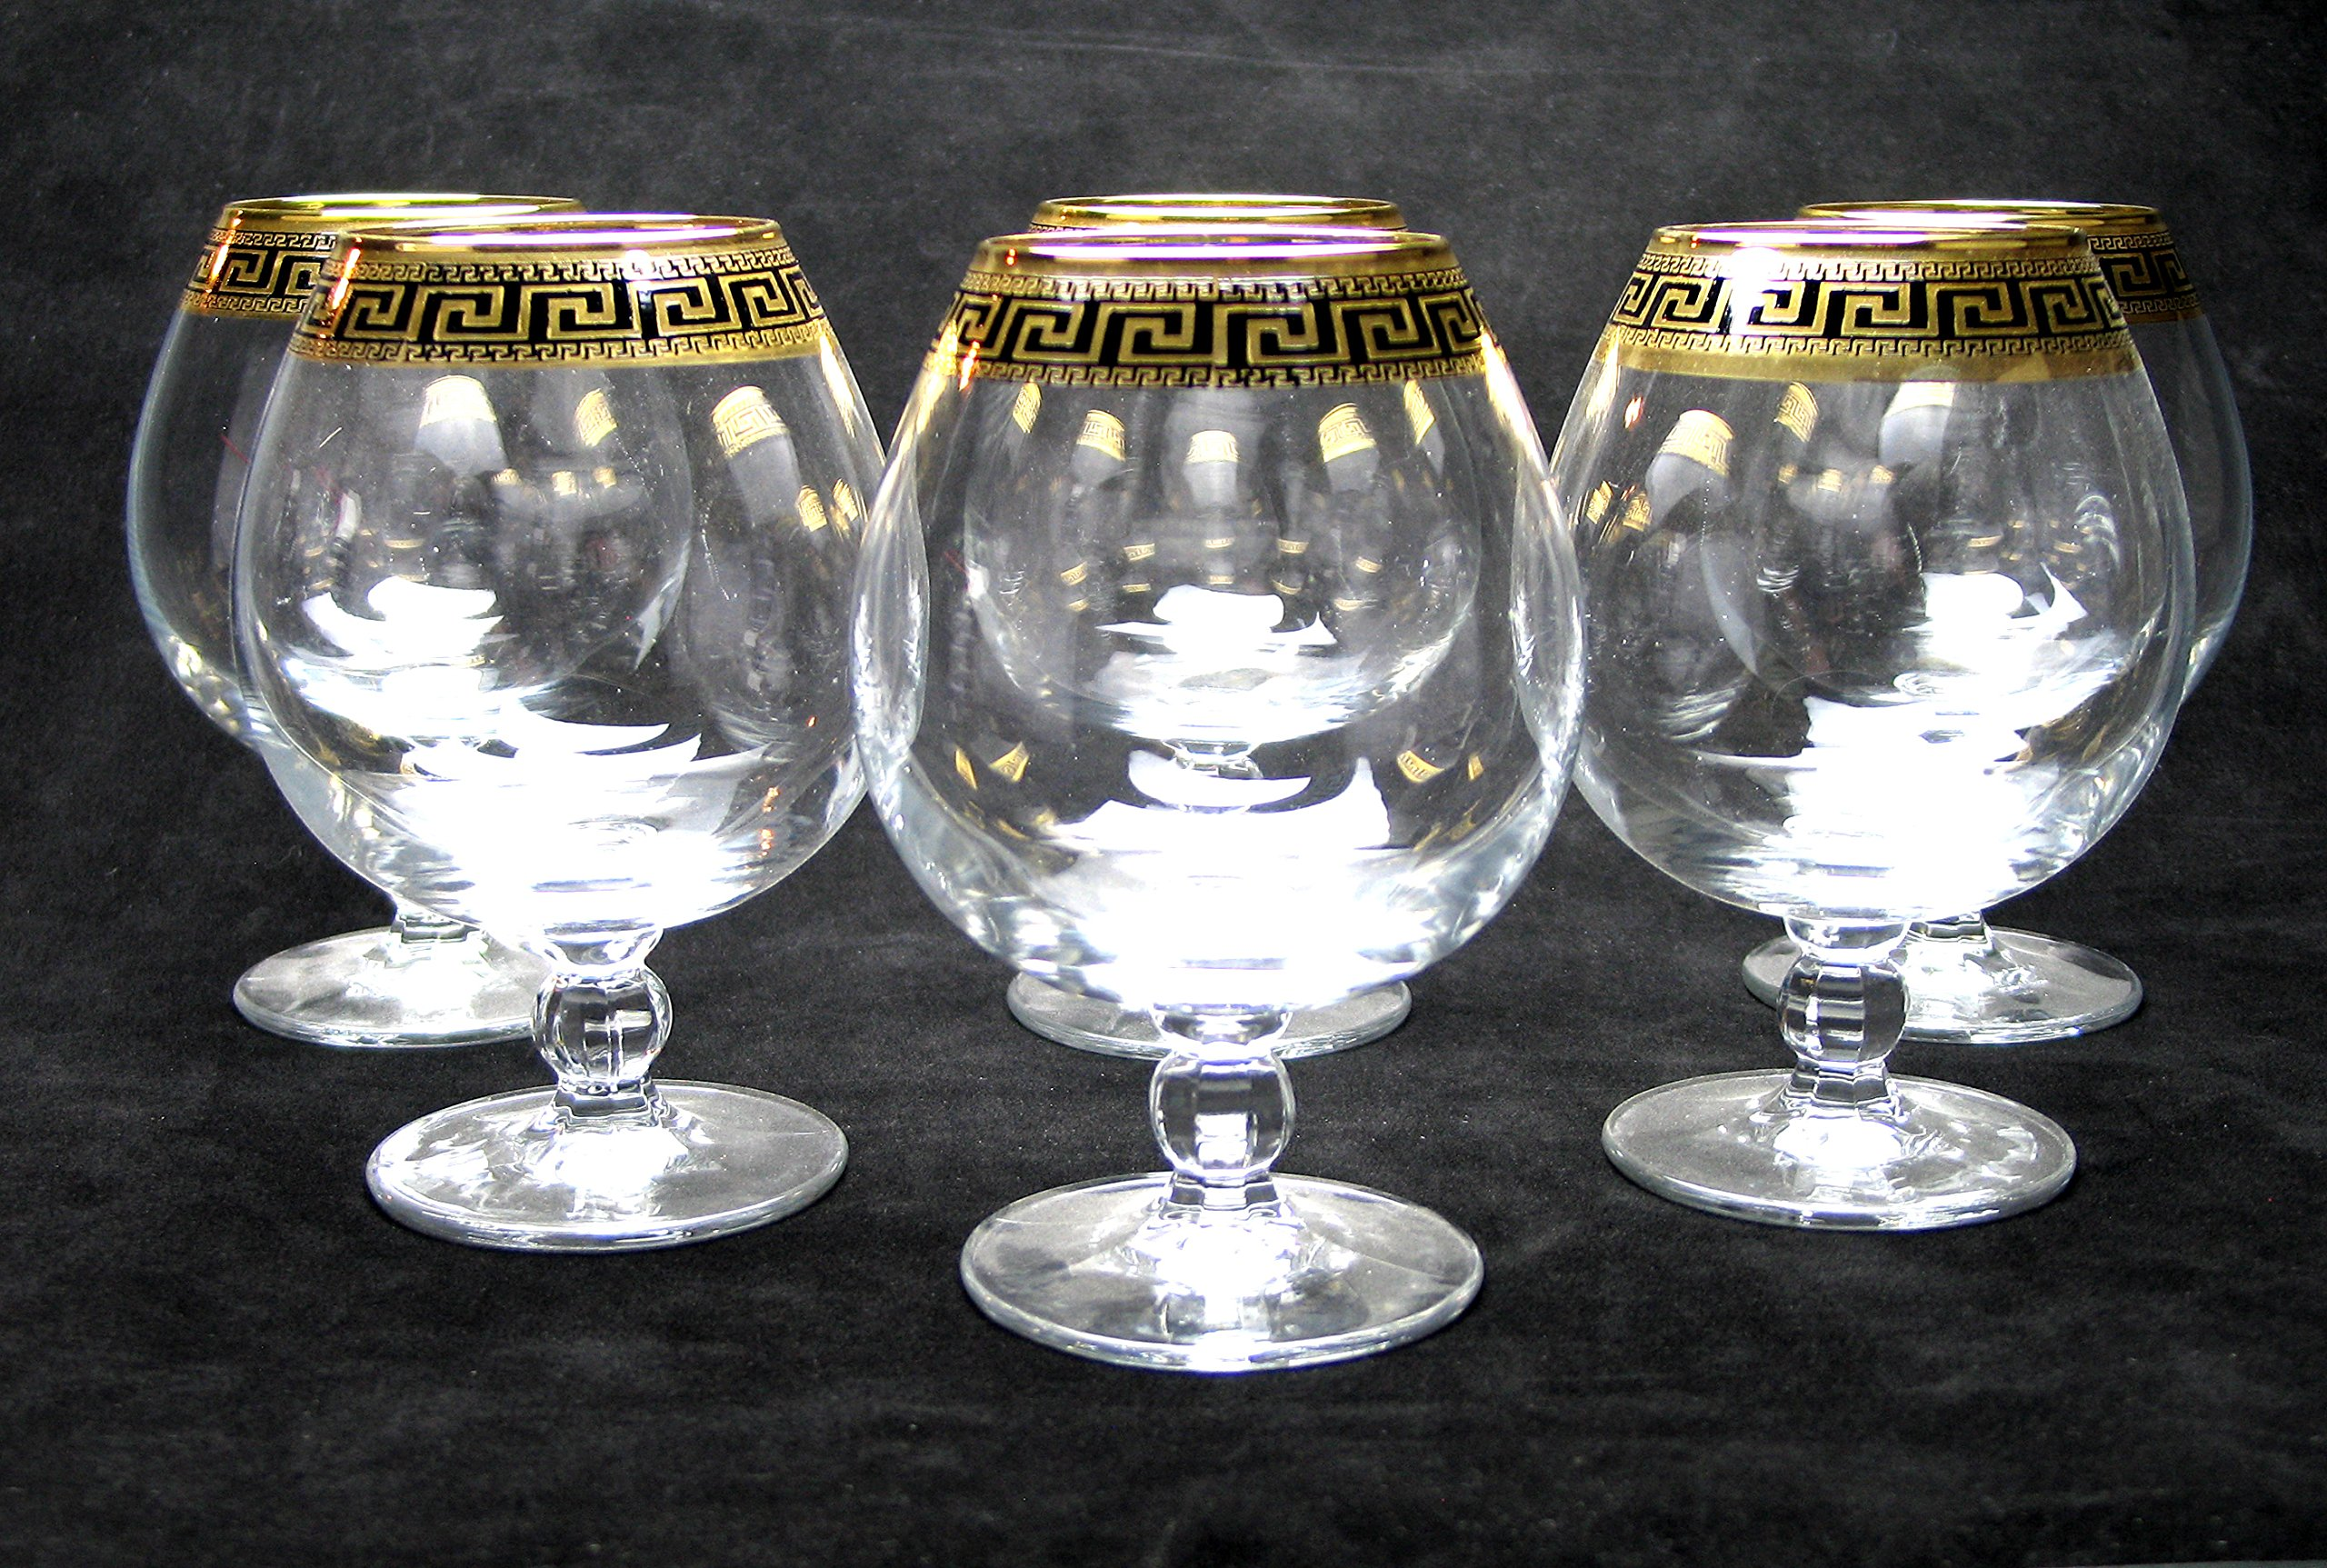 ''Cristalleria Italian Decor'' Crystal Cognac Brandy Snifter Goblet, 17 oz. Gold and Black Greek Key Ornament, Hand Made in Italy, SET OF 6 Glasses by Cristalleria Italian Decor (Image #4)